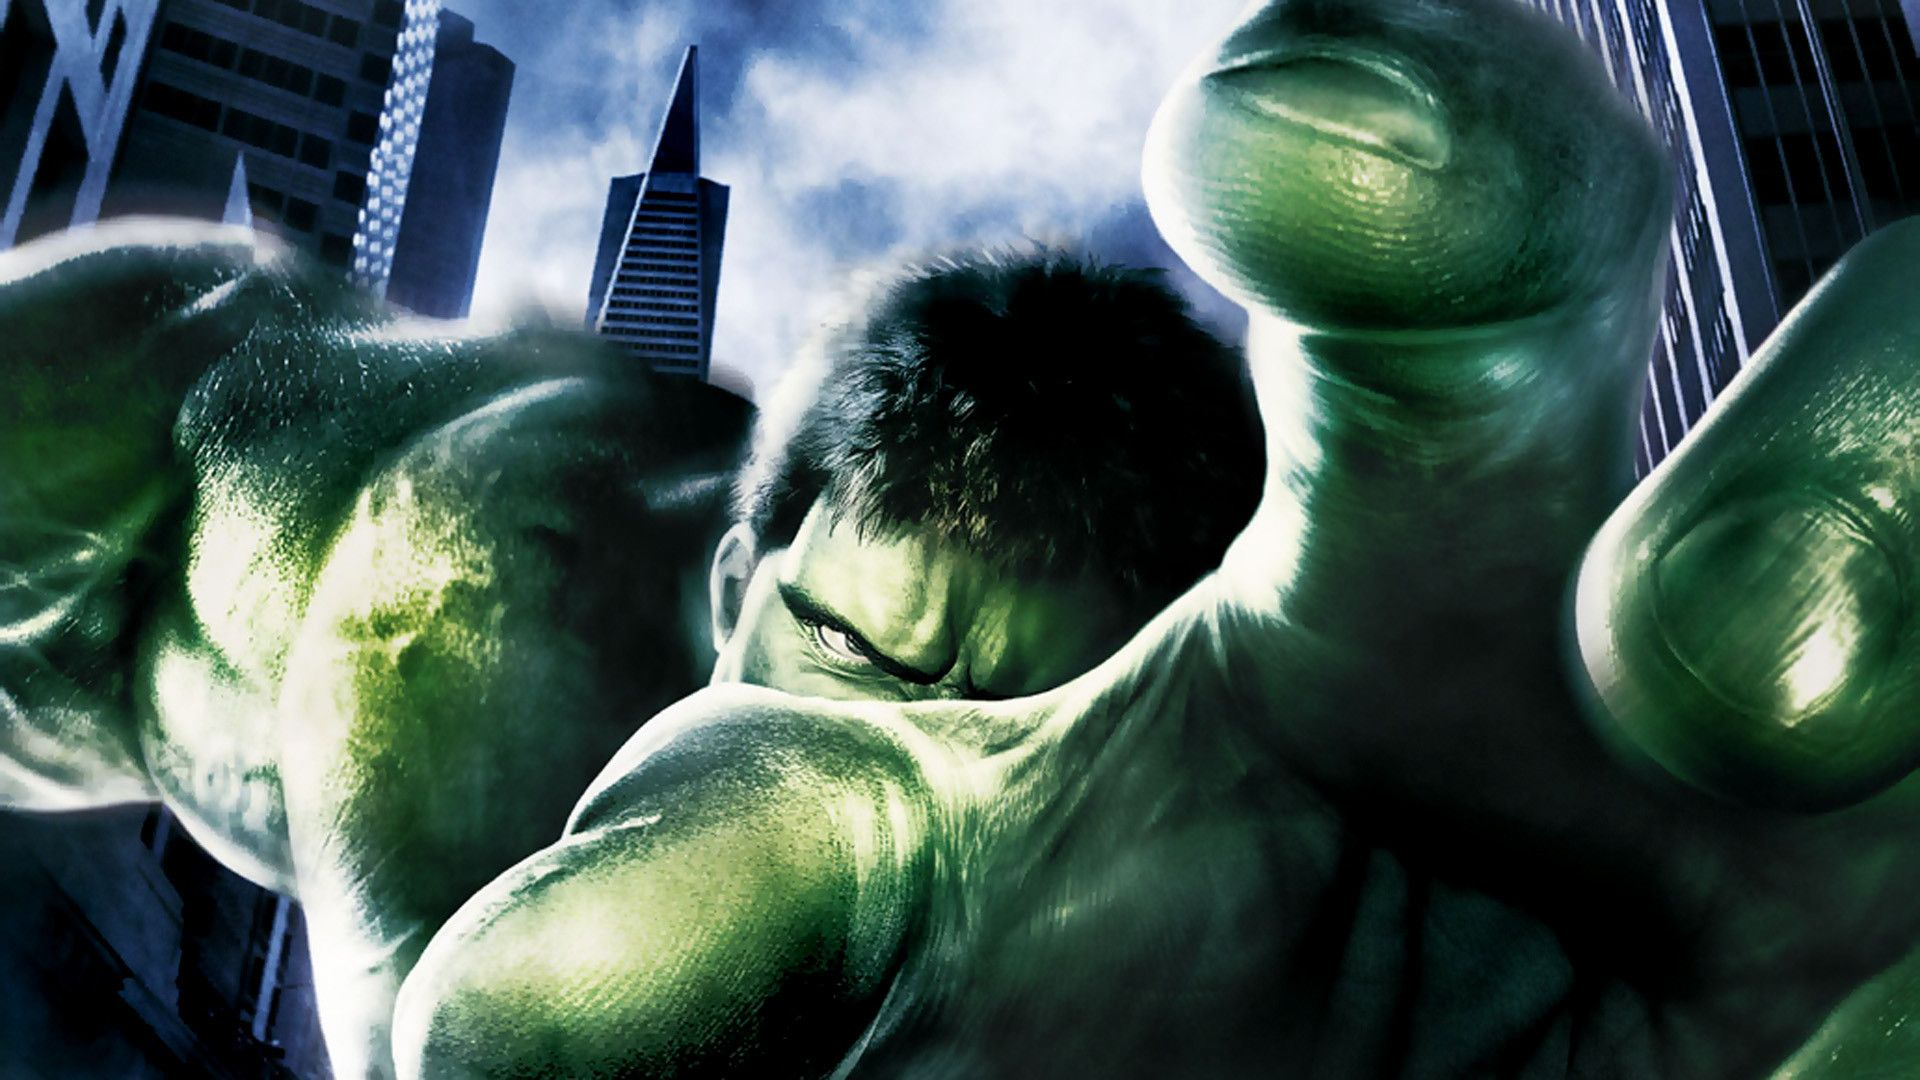 Hulk Movie Wallpaper HD